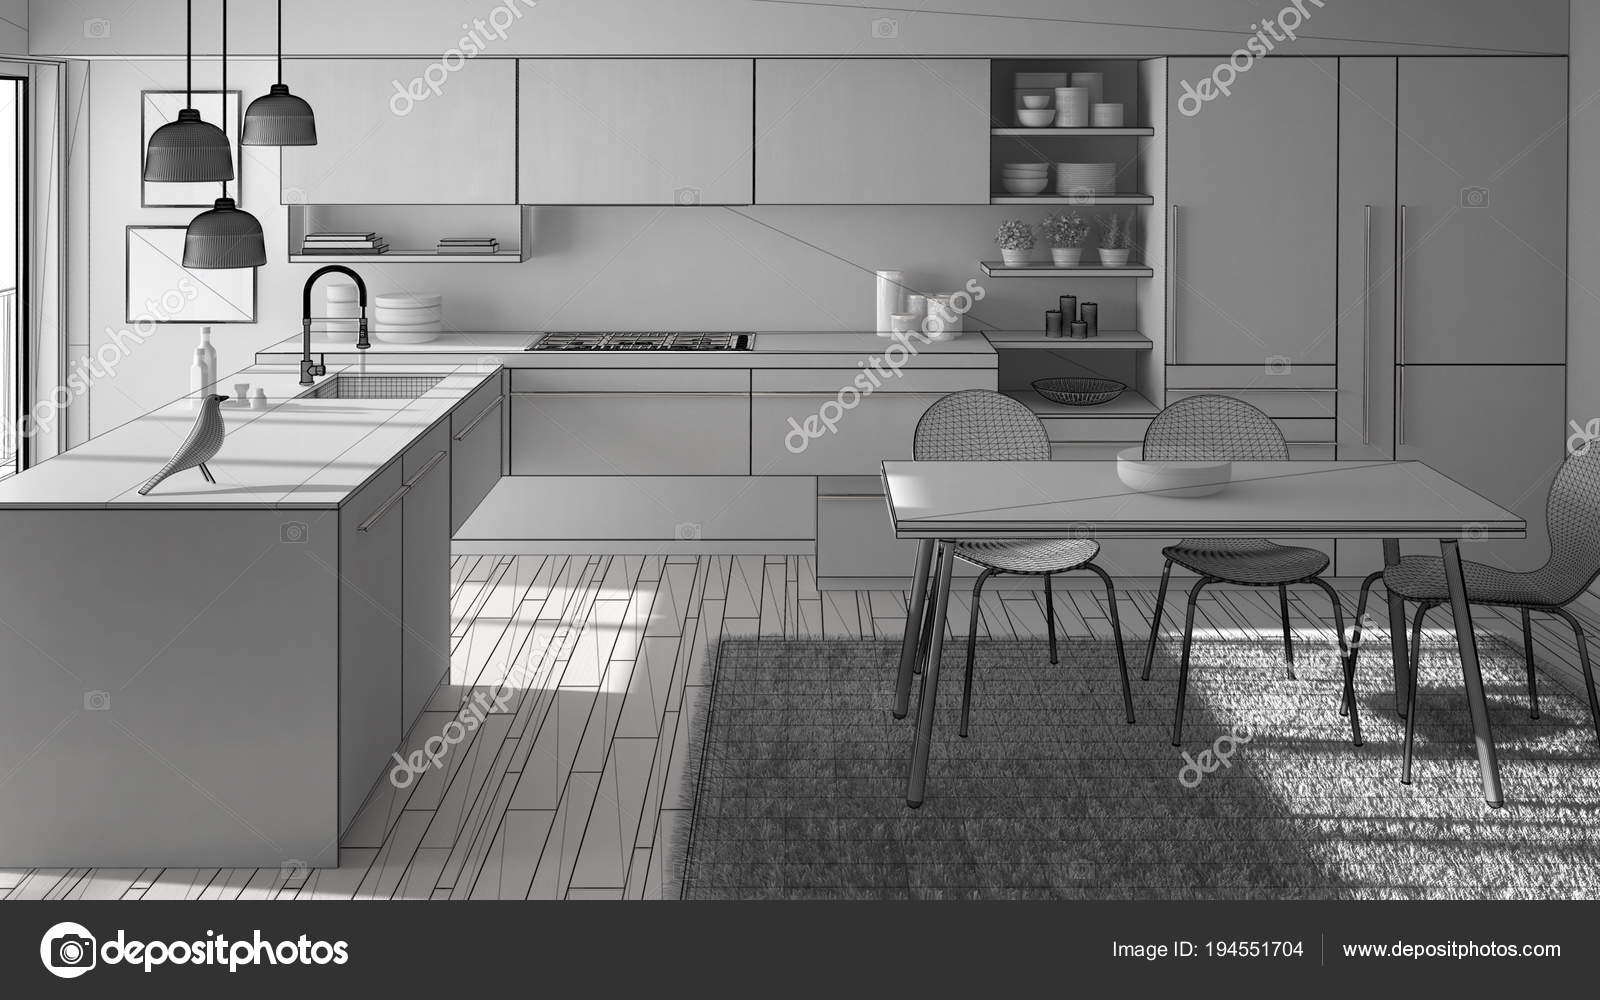 Unfinished Project Of Modern Minimalistic Kitchen With Dining Table Carpet And Panoramic Window Architecture Interior Design Stock Photo Image By C Archiviz 194551704